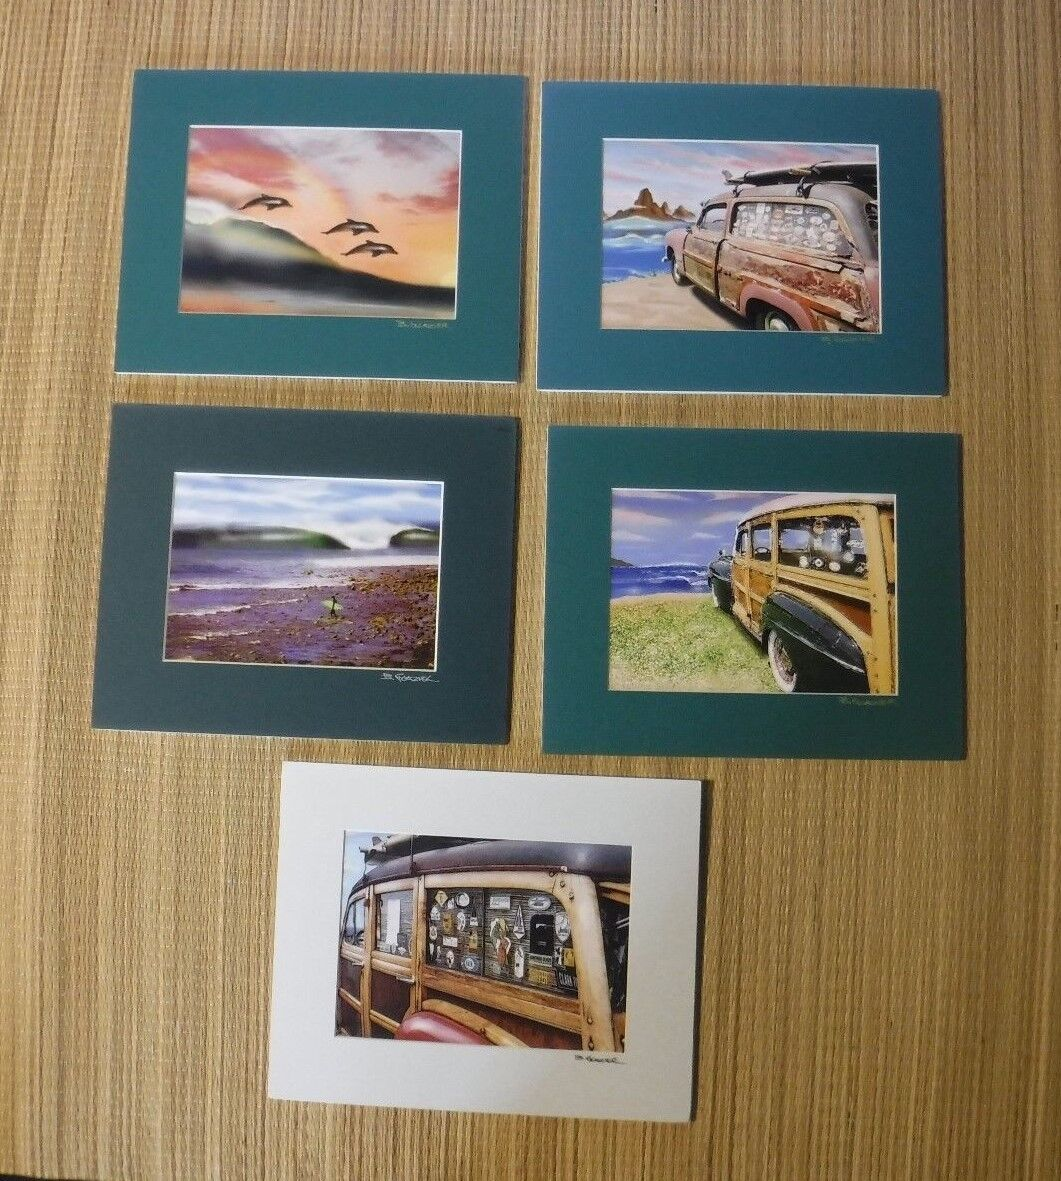 NEW MATTED SIGNED PHOTOGRAPH  SURF ART WOODIES WAVES  8  X 10  SET OF 5